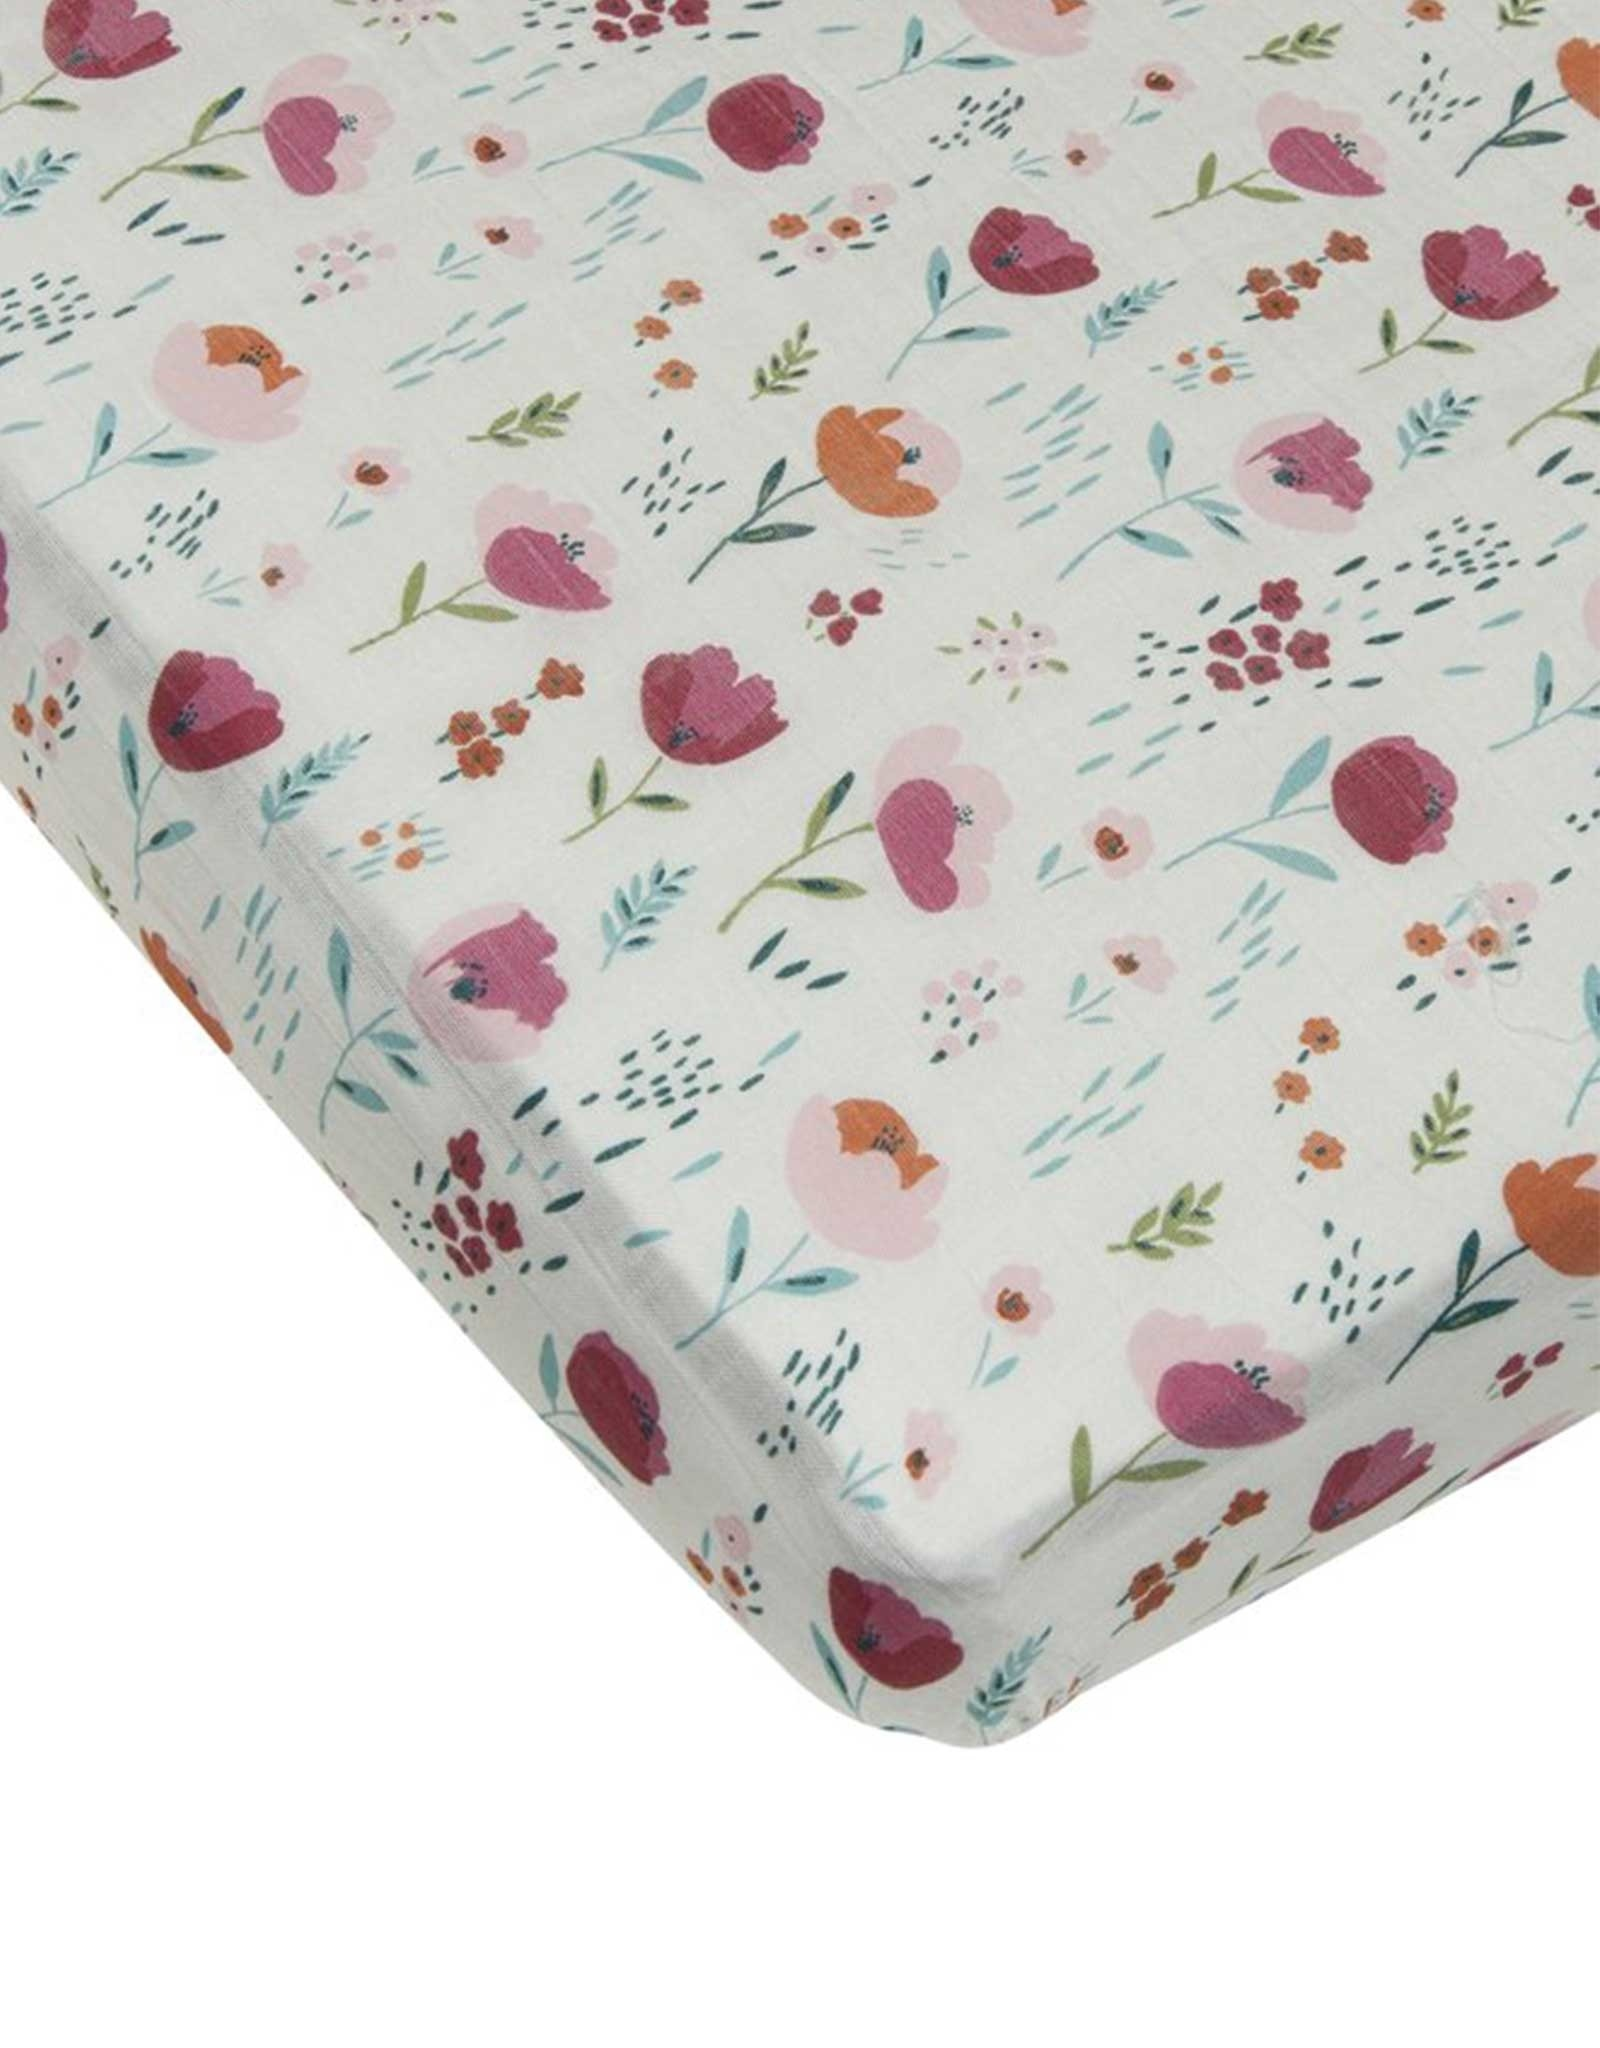 Loulou Lollipop Fitted Crib Sheet - Rosey Bloom